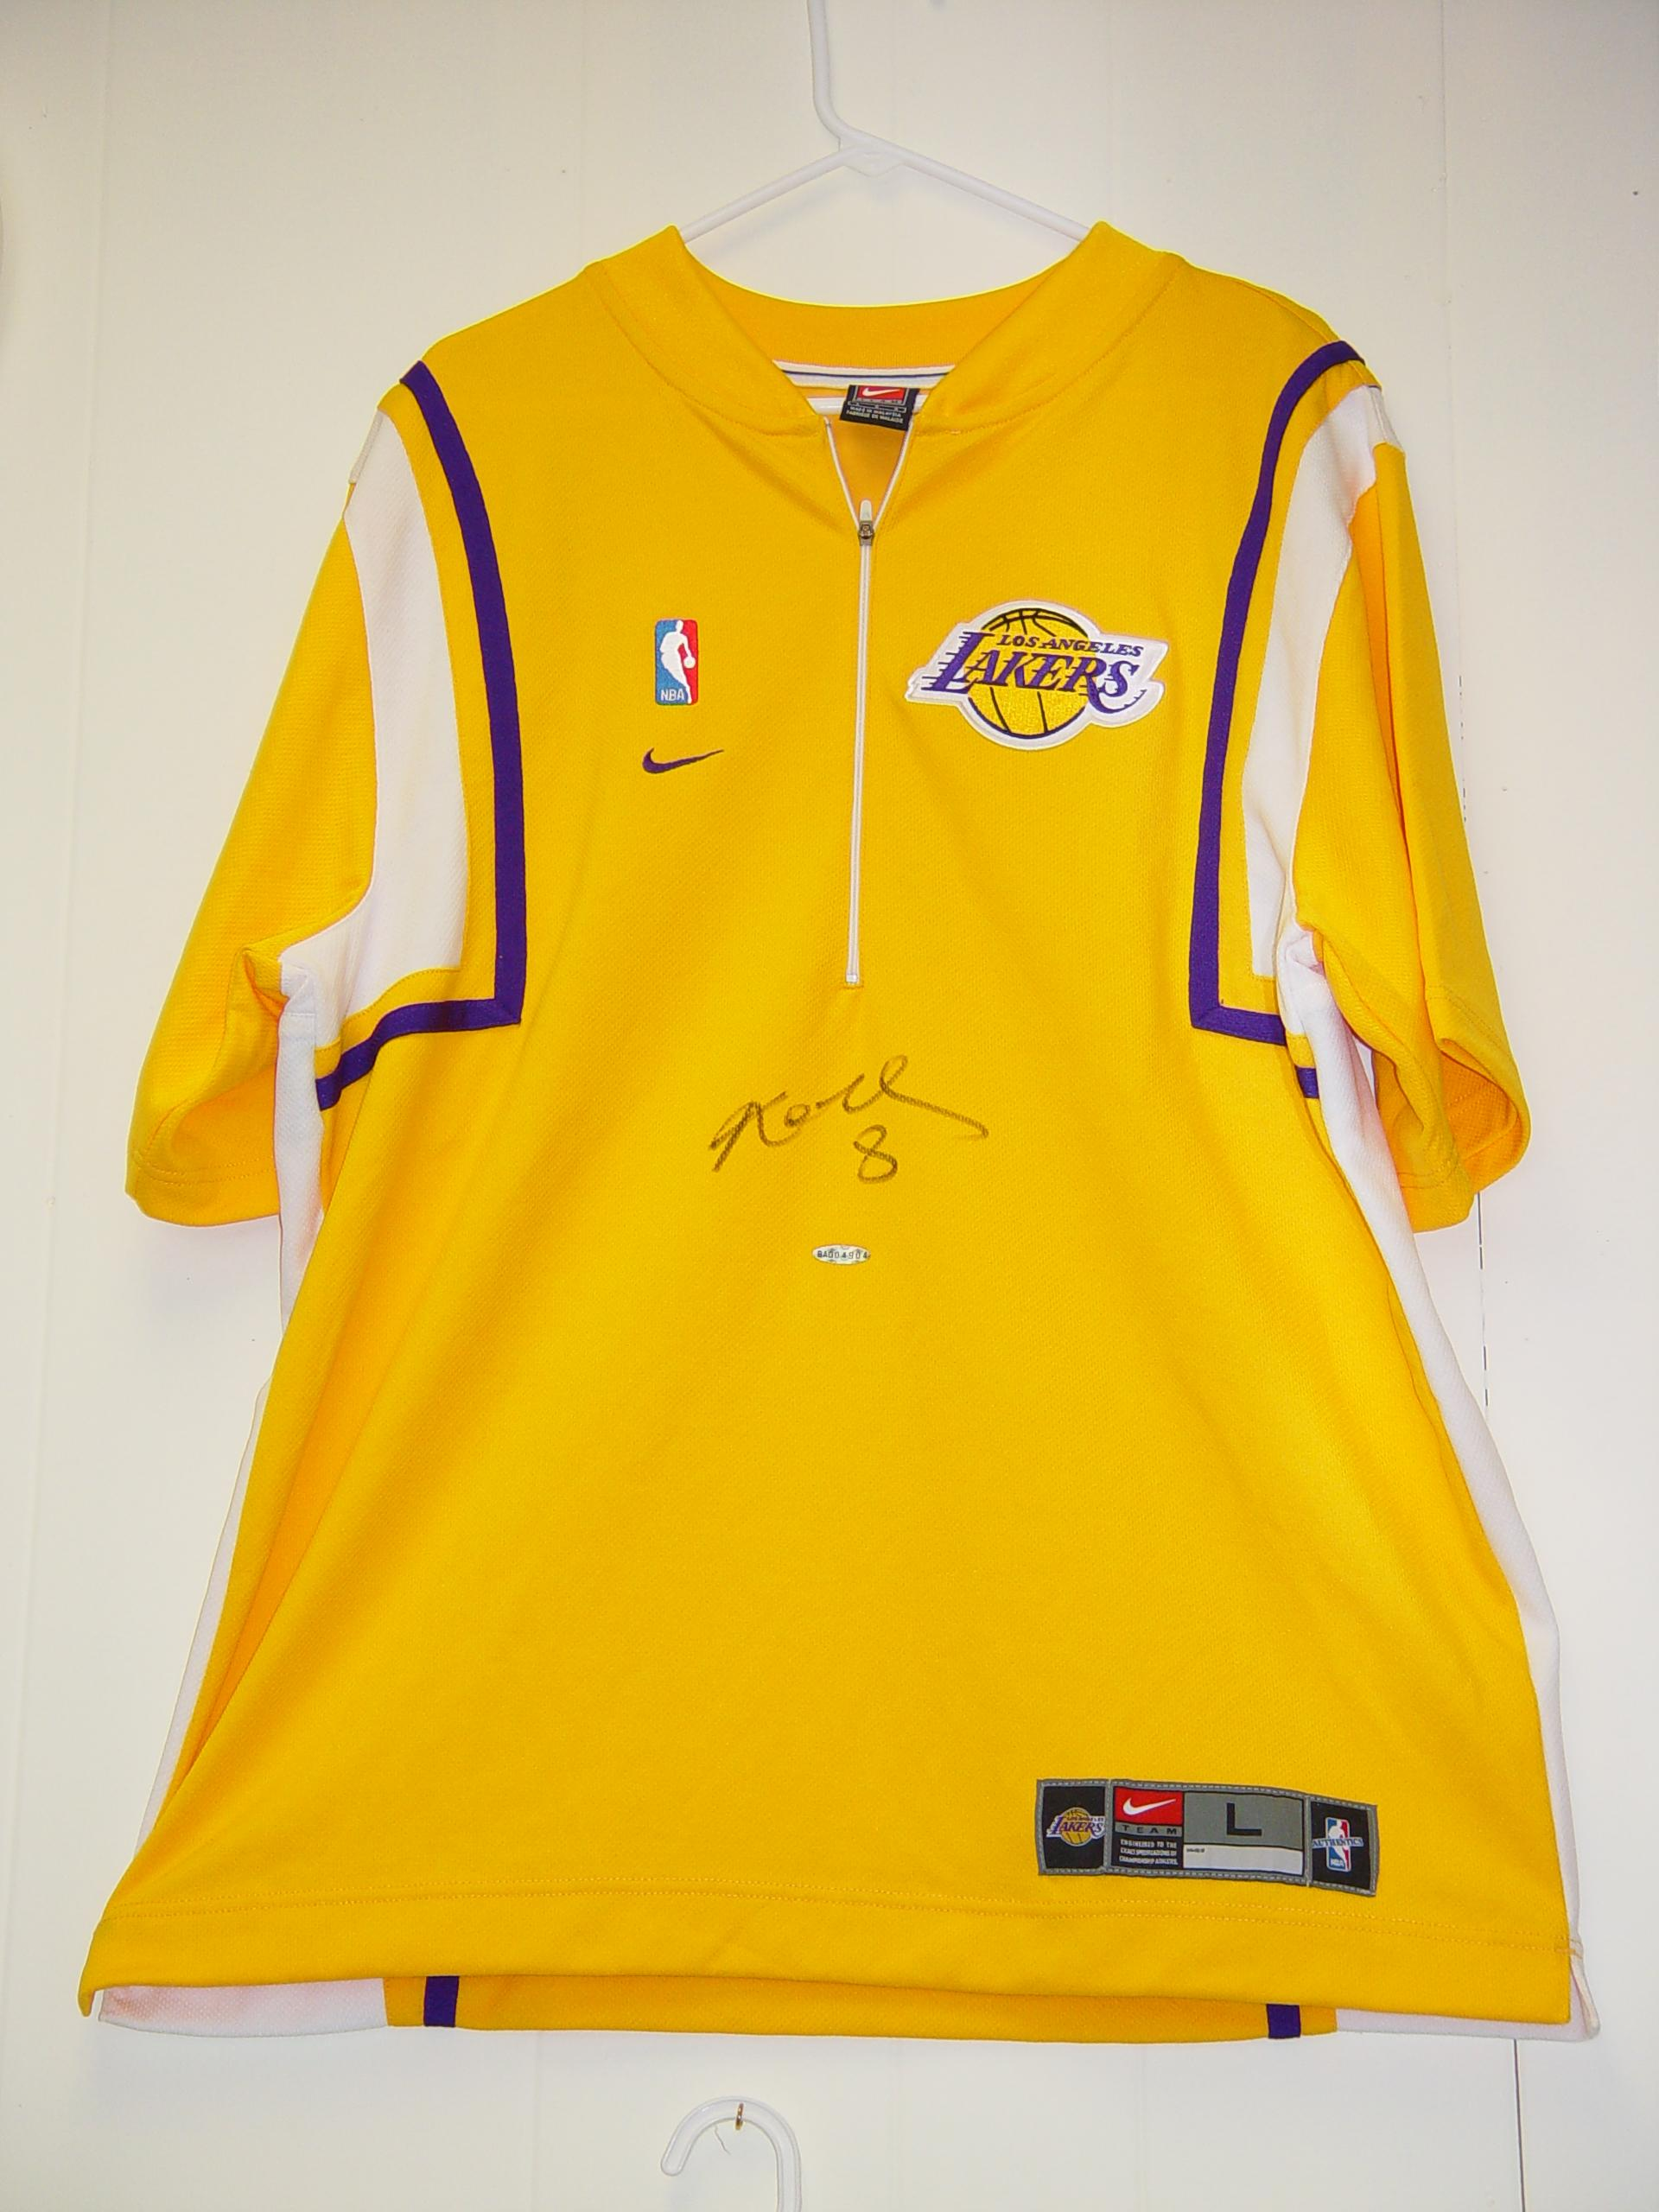 Kobe Bryant Autographed Nike Large Warm-up Jersey from Upper Deck